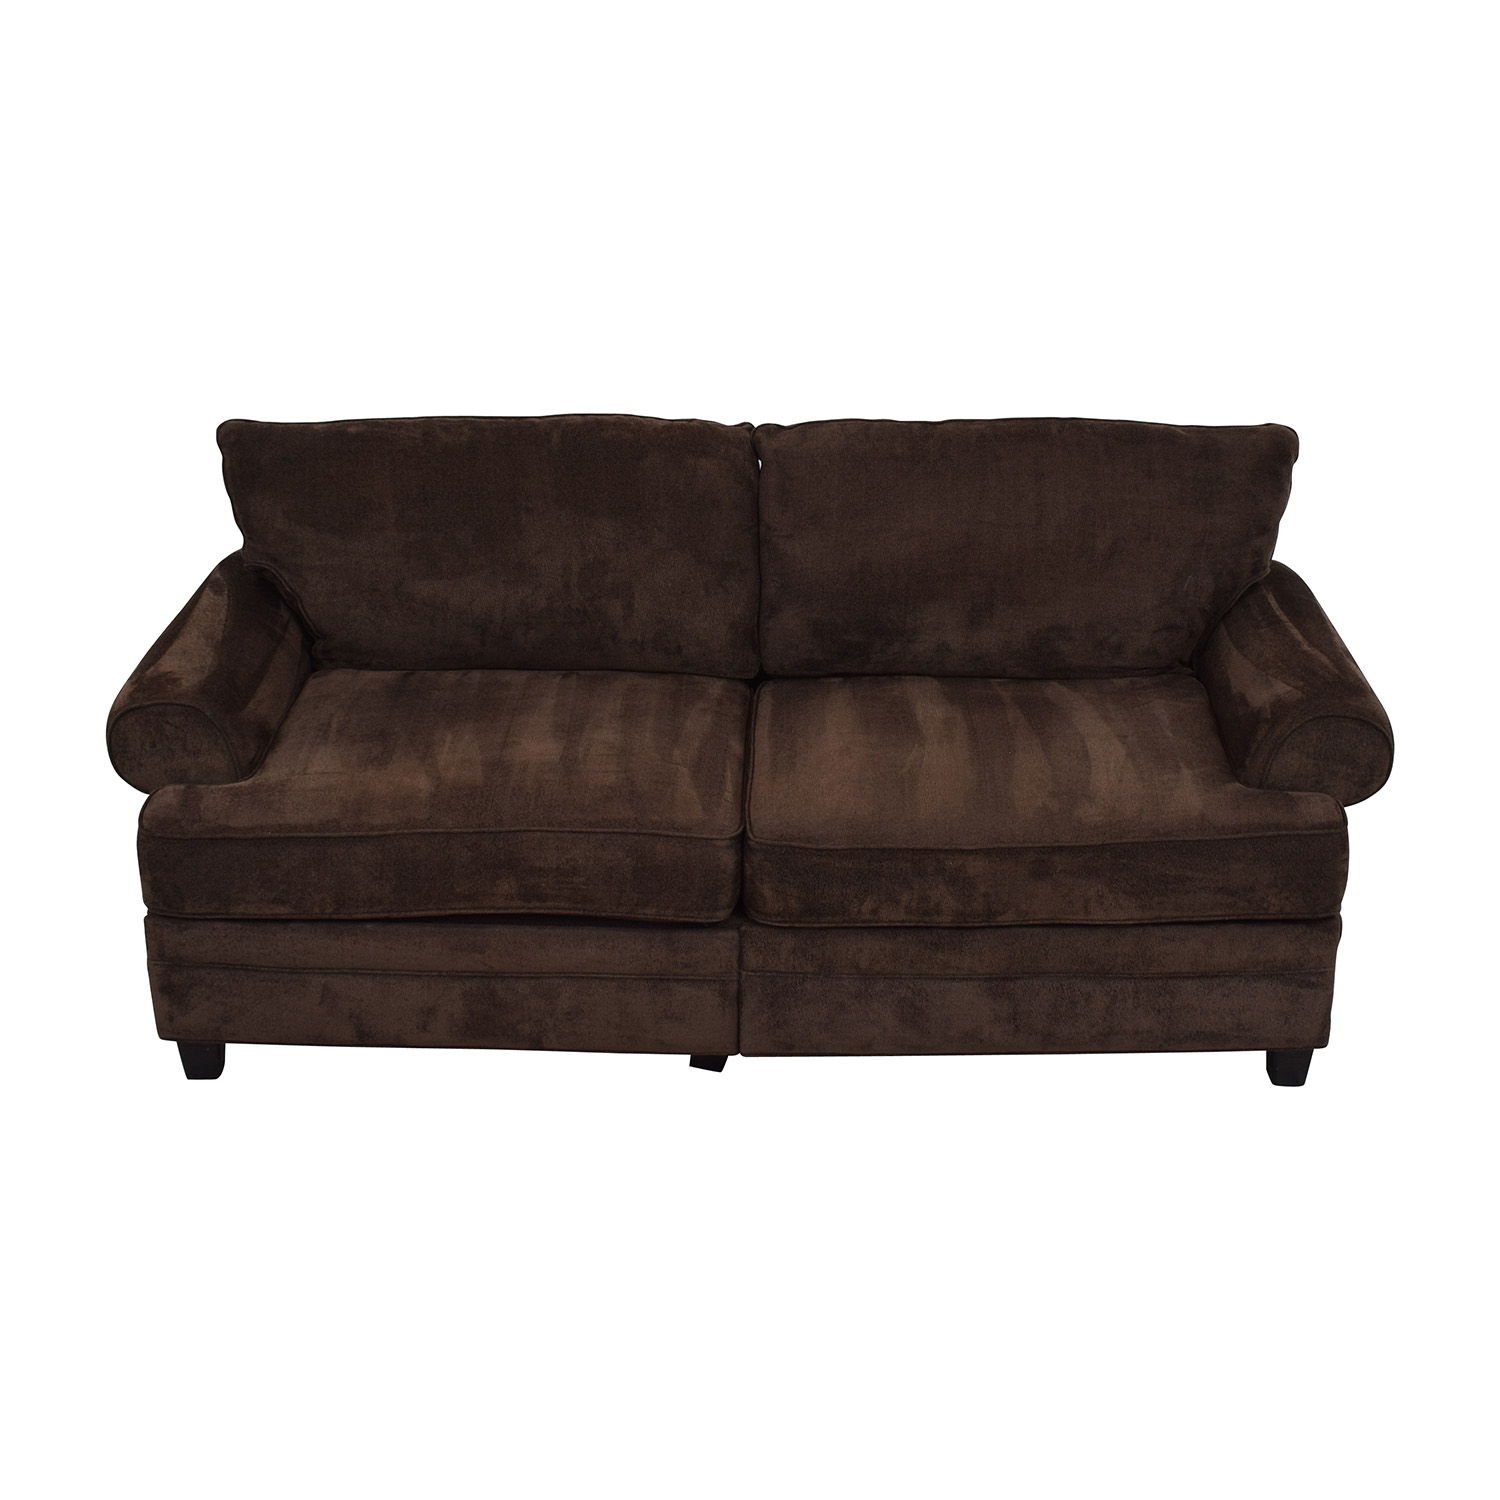 71% OFF Pottery Barn Pottery Barn Two Seater Sofa Sofas